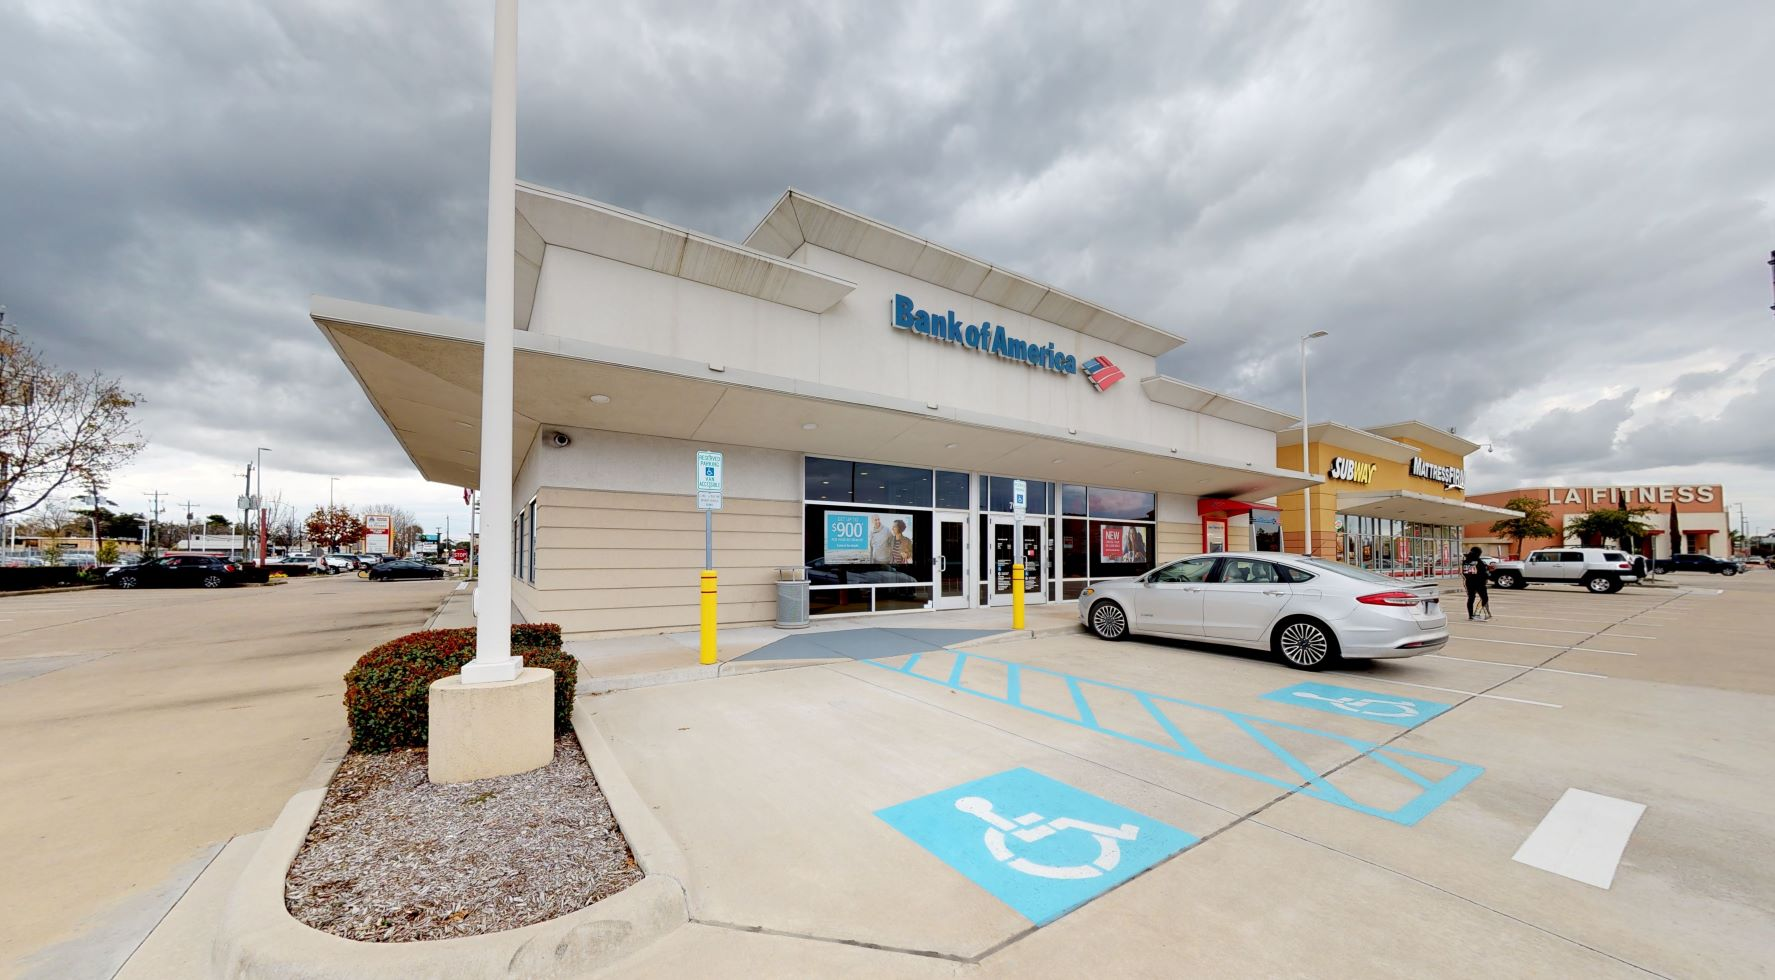 Bank of America financial center with drive-thru ATM   7696 Katy Fwy, Houston, TX 77024